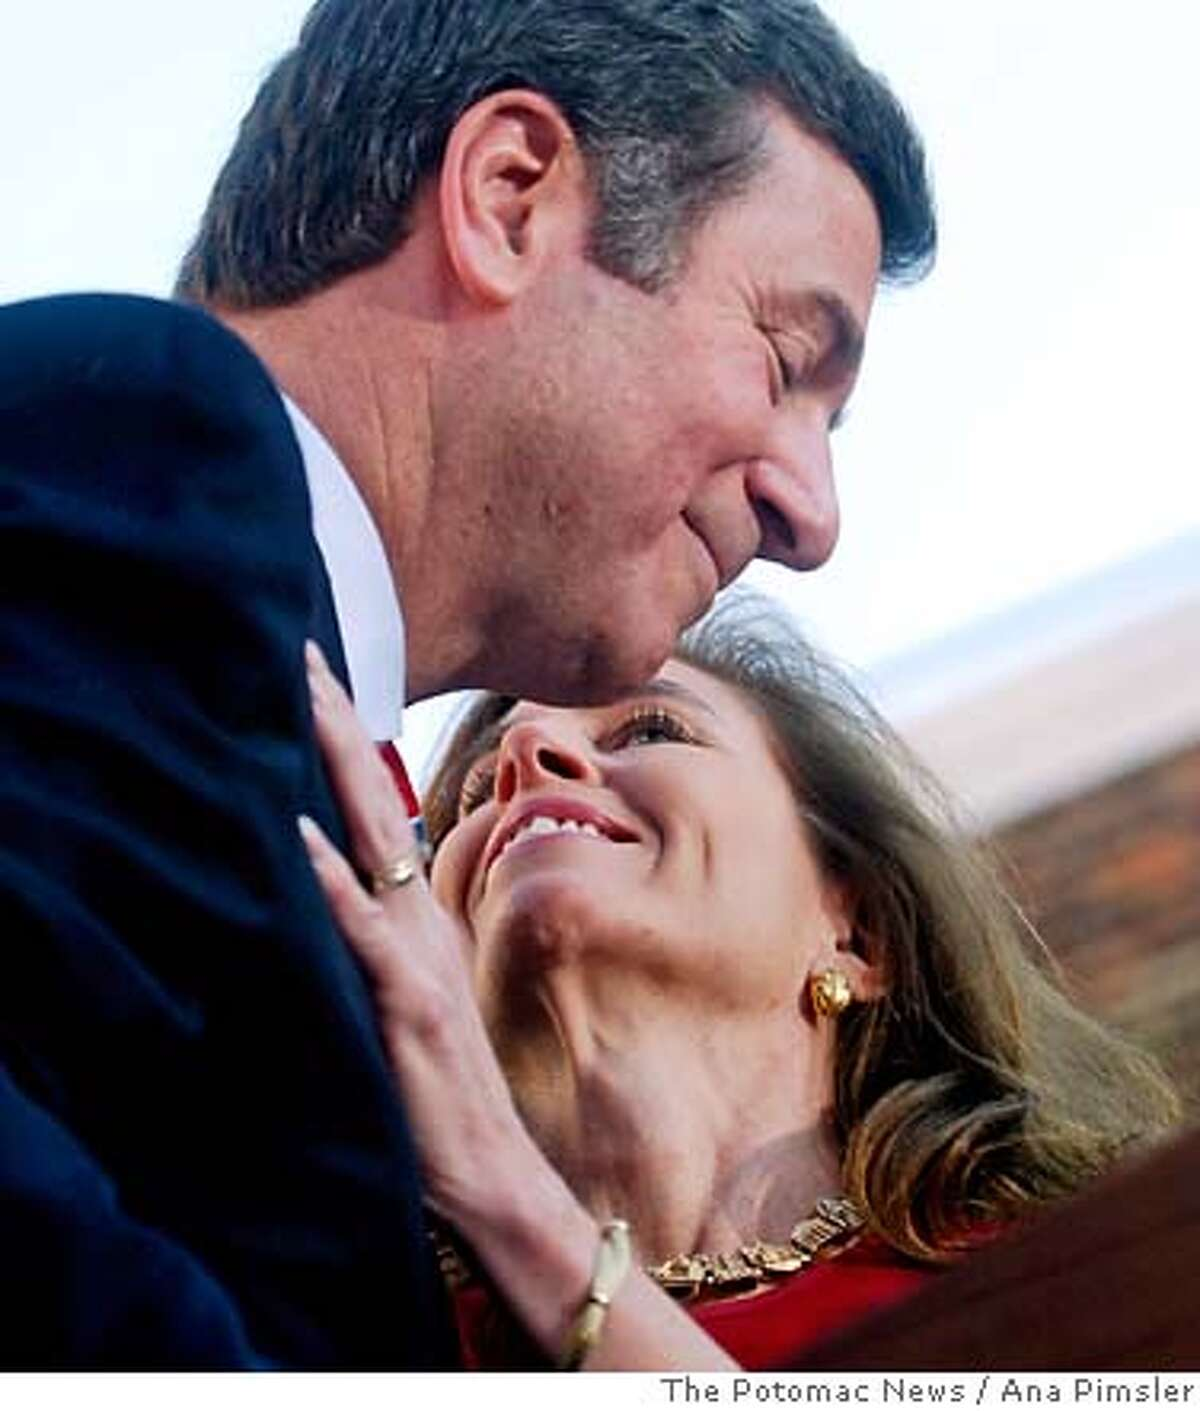 Sen. George Allen, R-Va., shares a moment with his wife, Susan during his concession speech in Alexandria, Va., Thursday, Nov. 9, 2006. (AP Photo/The Potomac News, Ana Pimsler)**MANDATORY CREDIT**